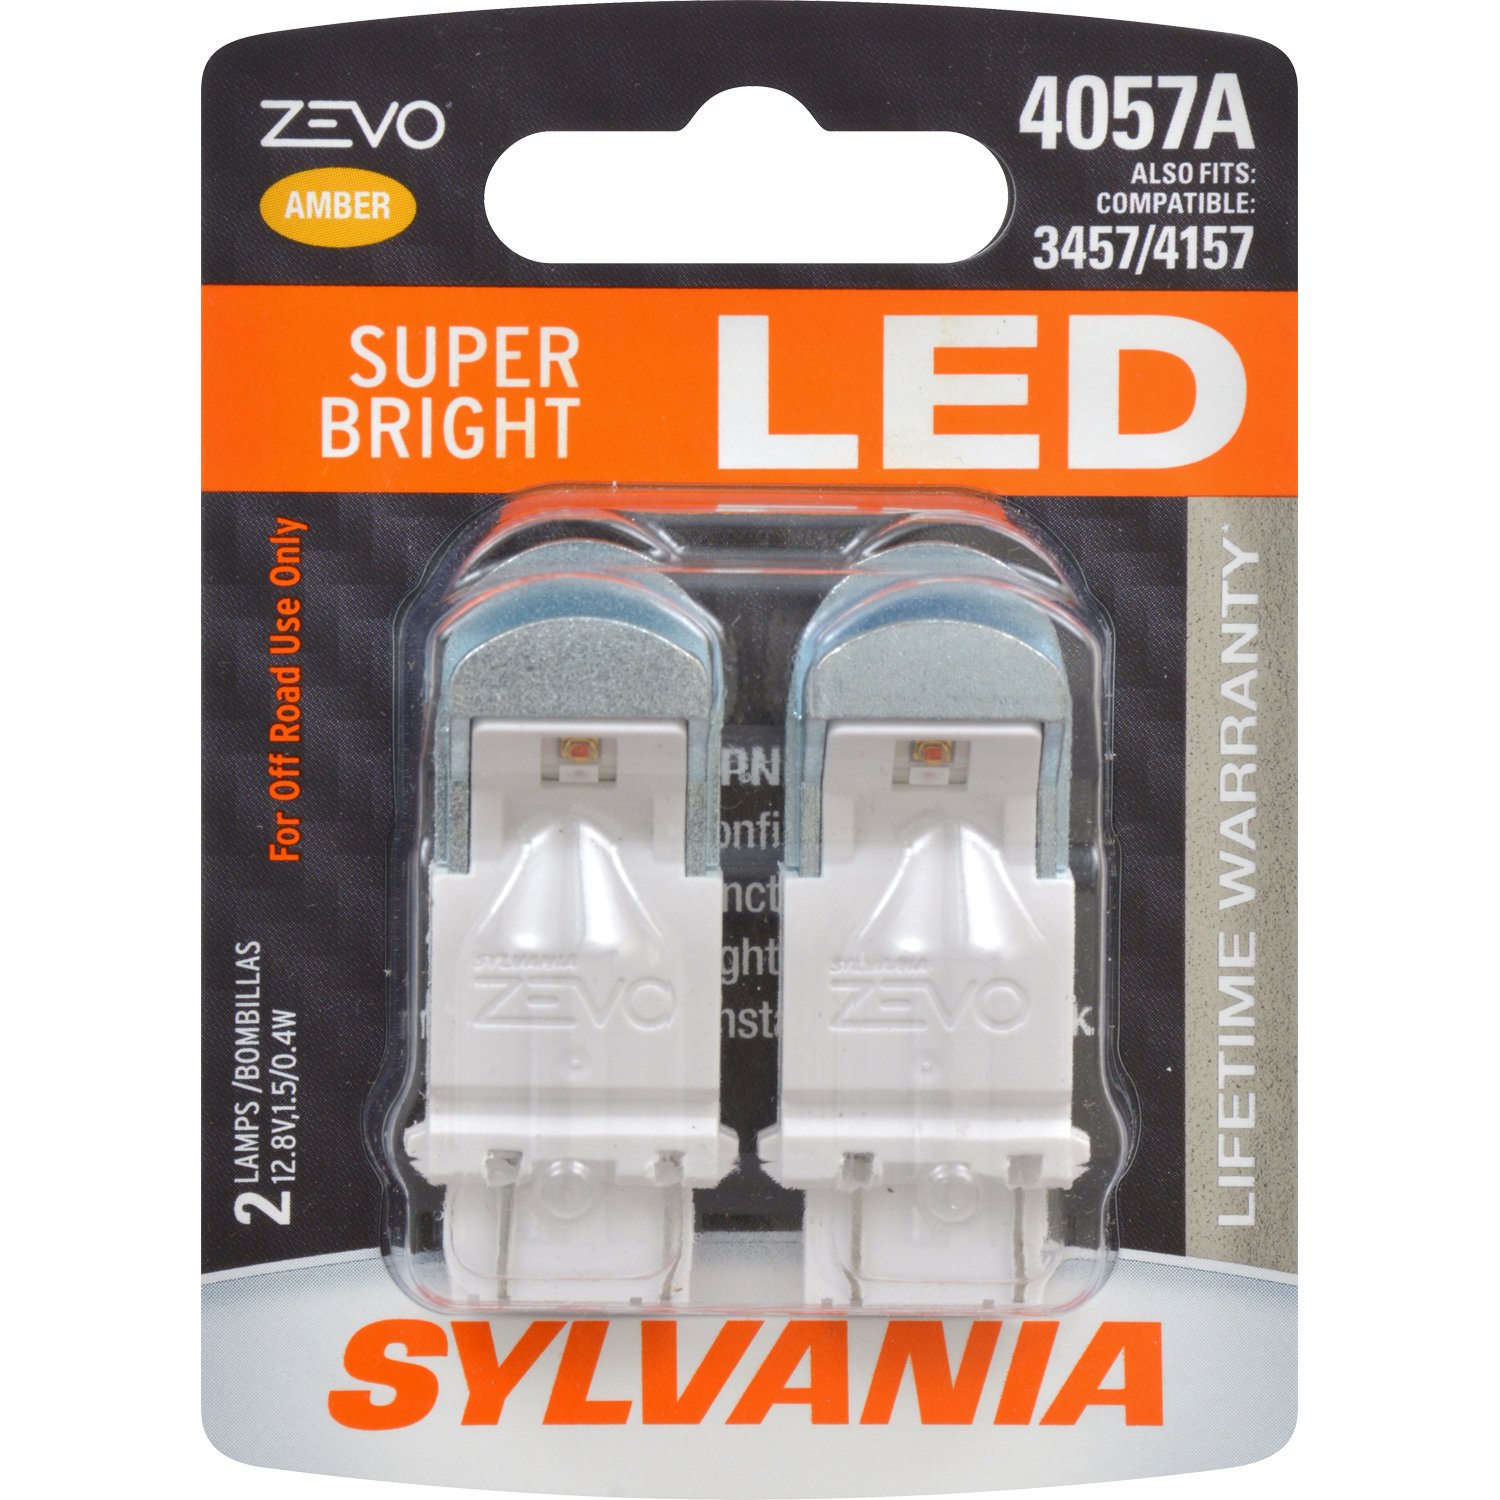 Contains 2 Bulbs Ideal for Daytime Running Lights DRL SYLVANIA 4057 ZEVO LED White Bulb and Back-Up//Reverse Lights Bright LED Bulb